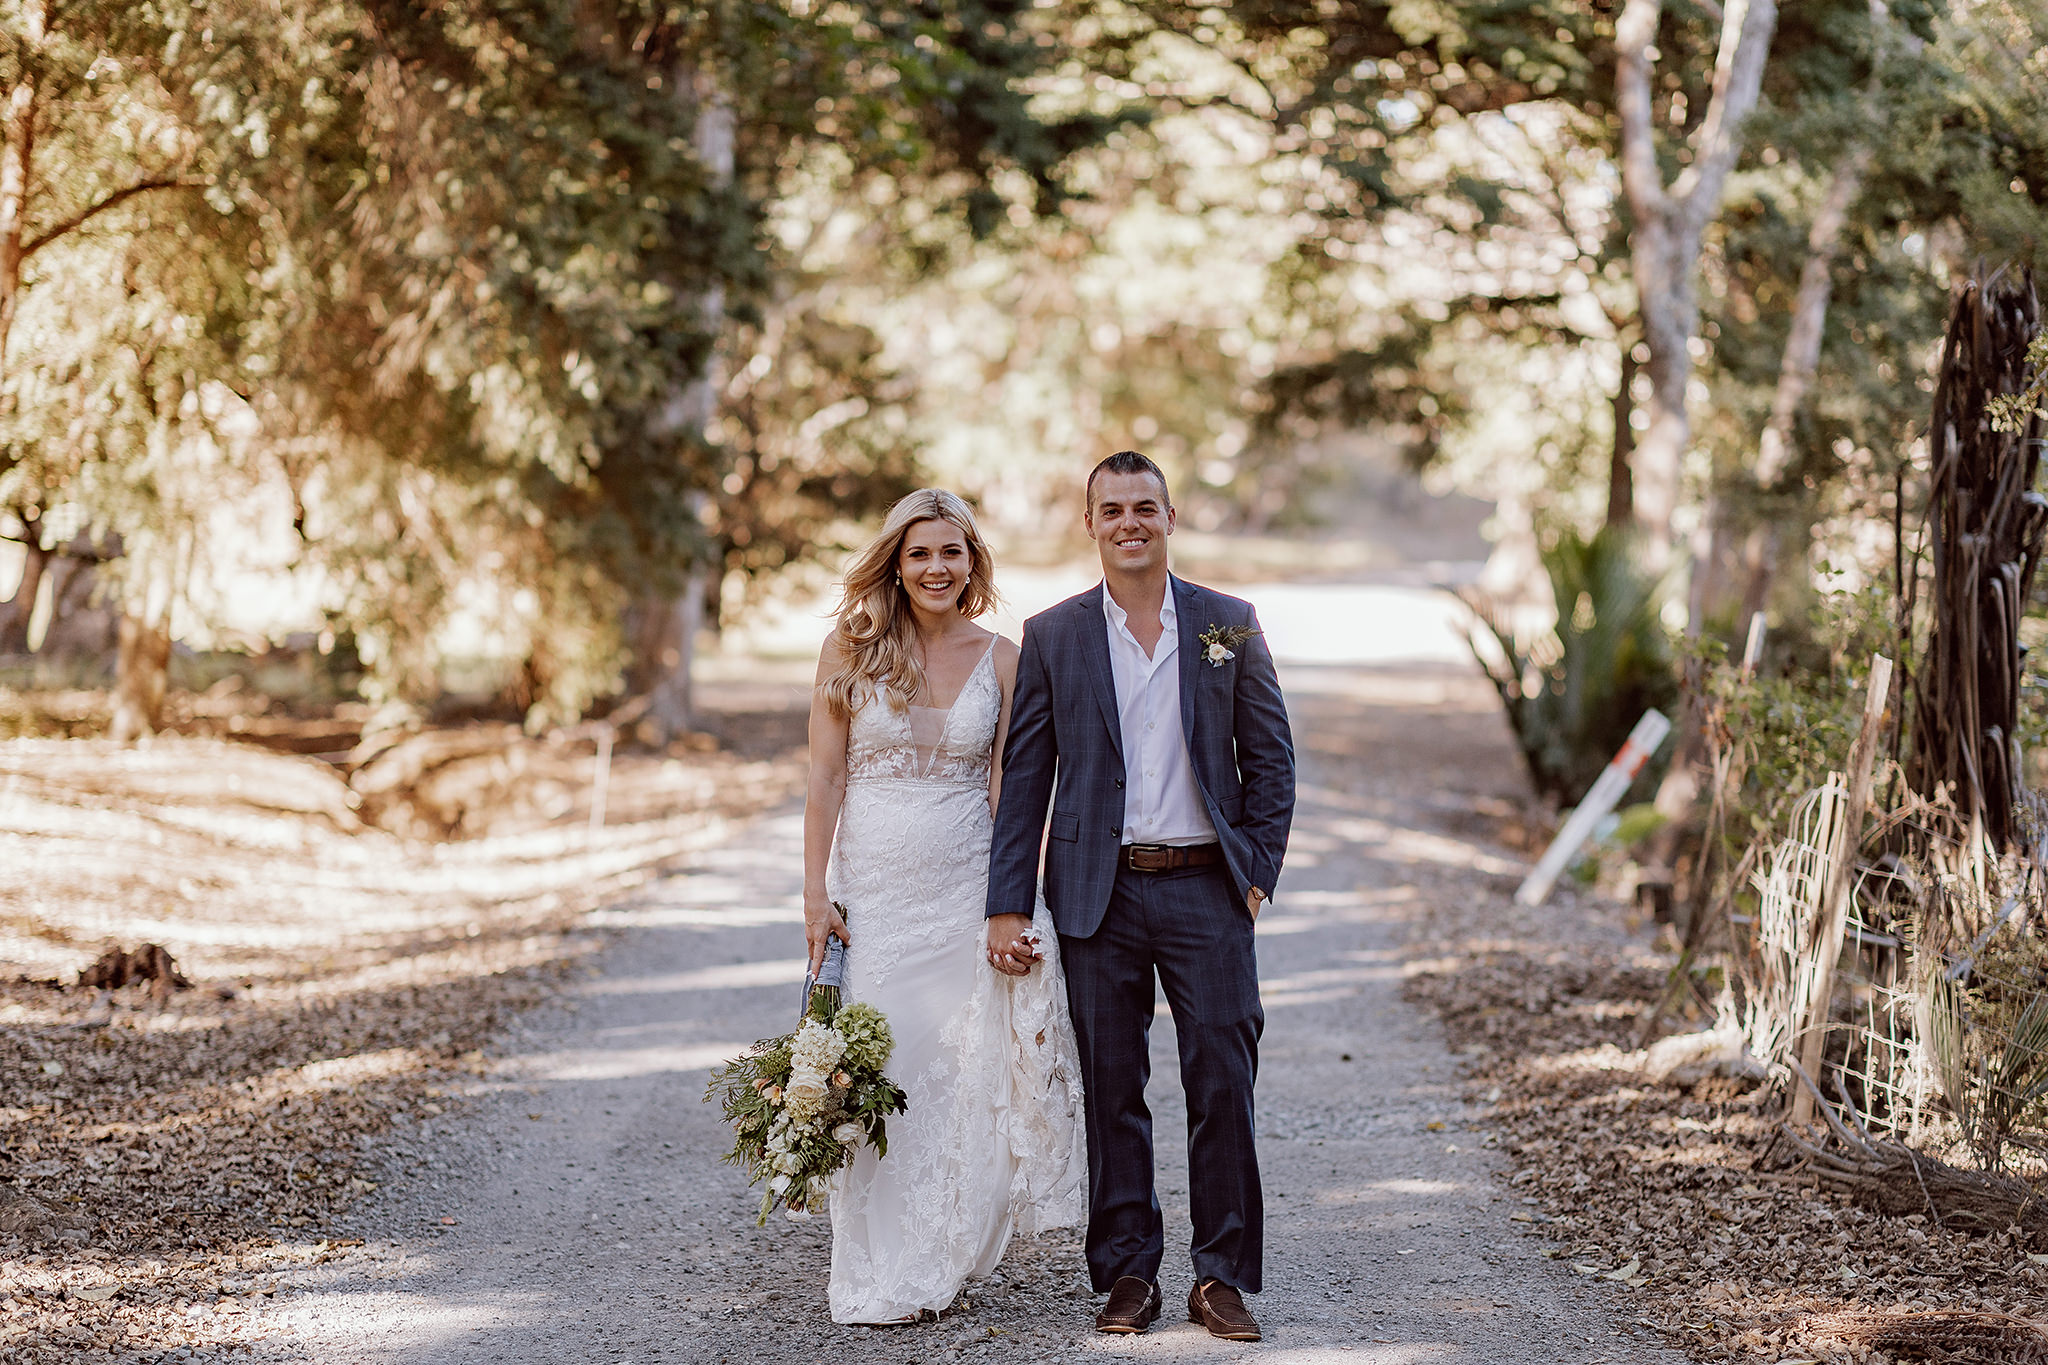 kelly-logan-whangapoua-wedding-jackson-bright20190212_0521.jpg